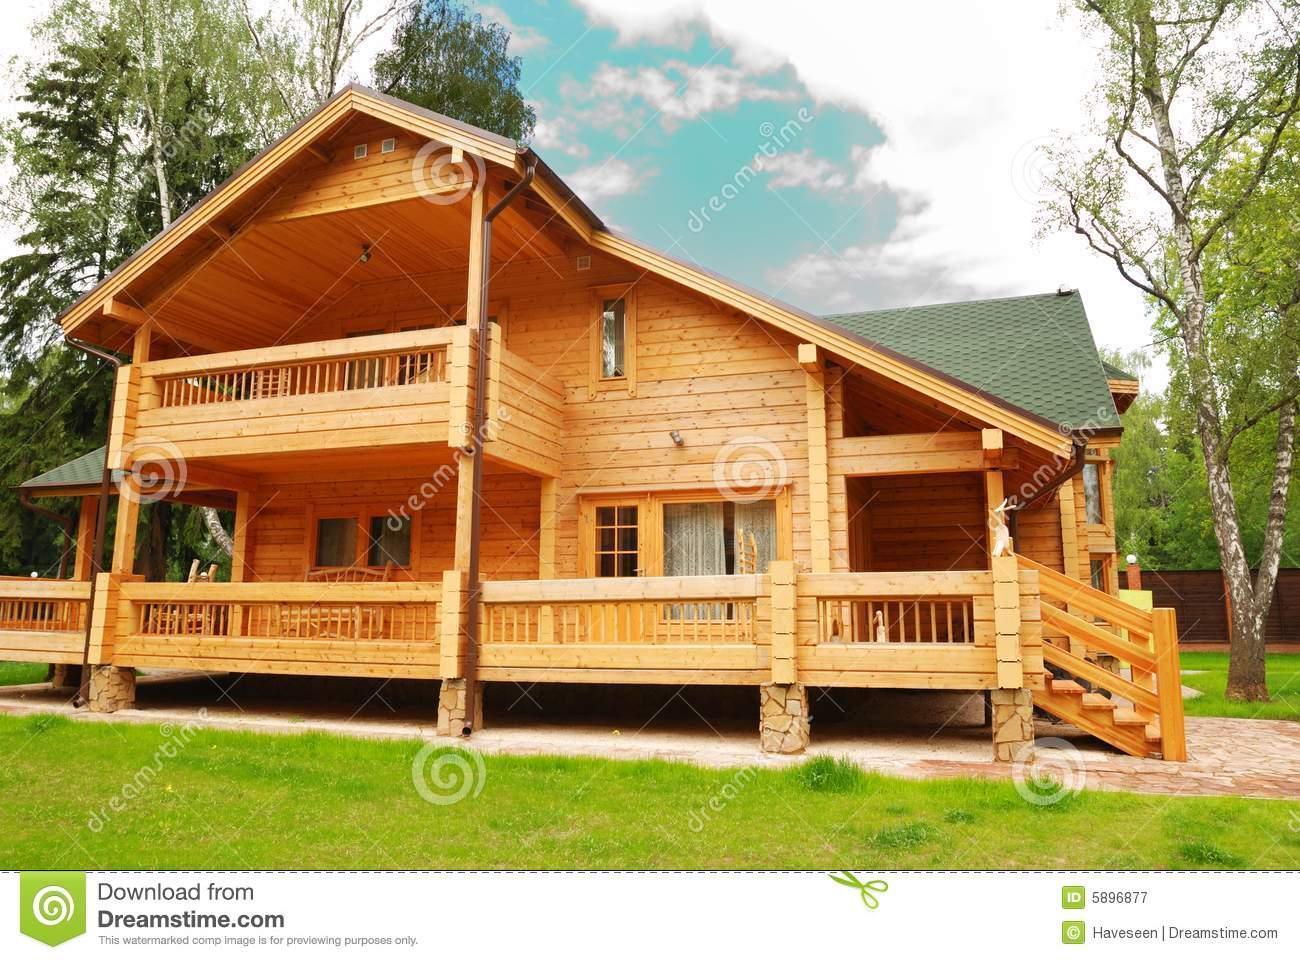 Wooden house stock image image of residential outdoors for Dream wooden house